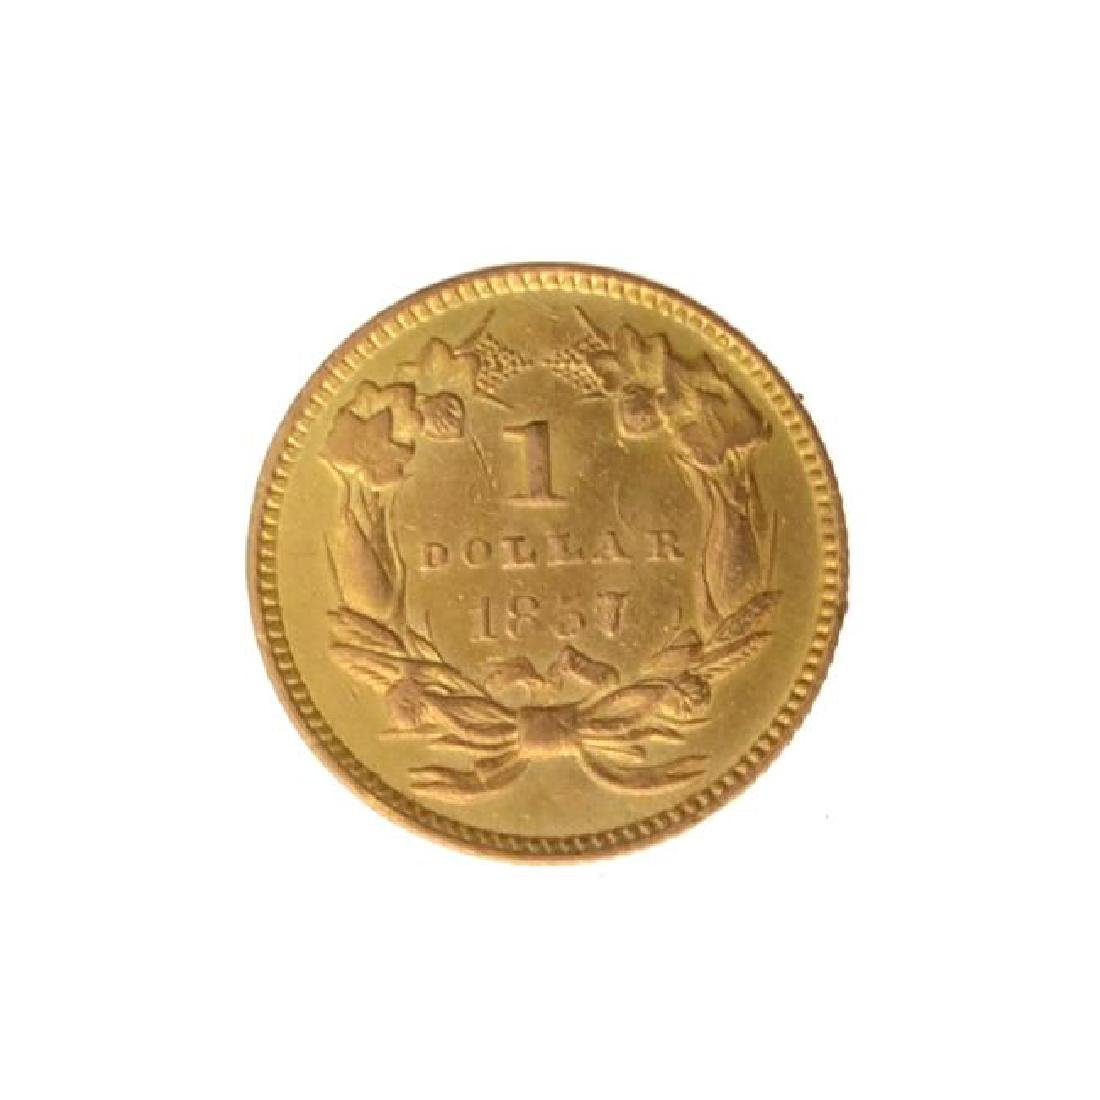 1857 $1 U.S. Indian Head Gold Coin - Great Investment - 2